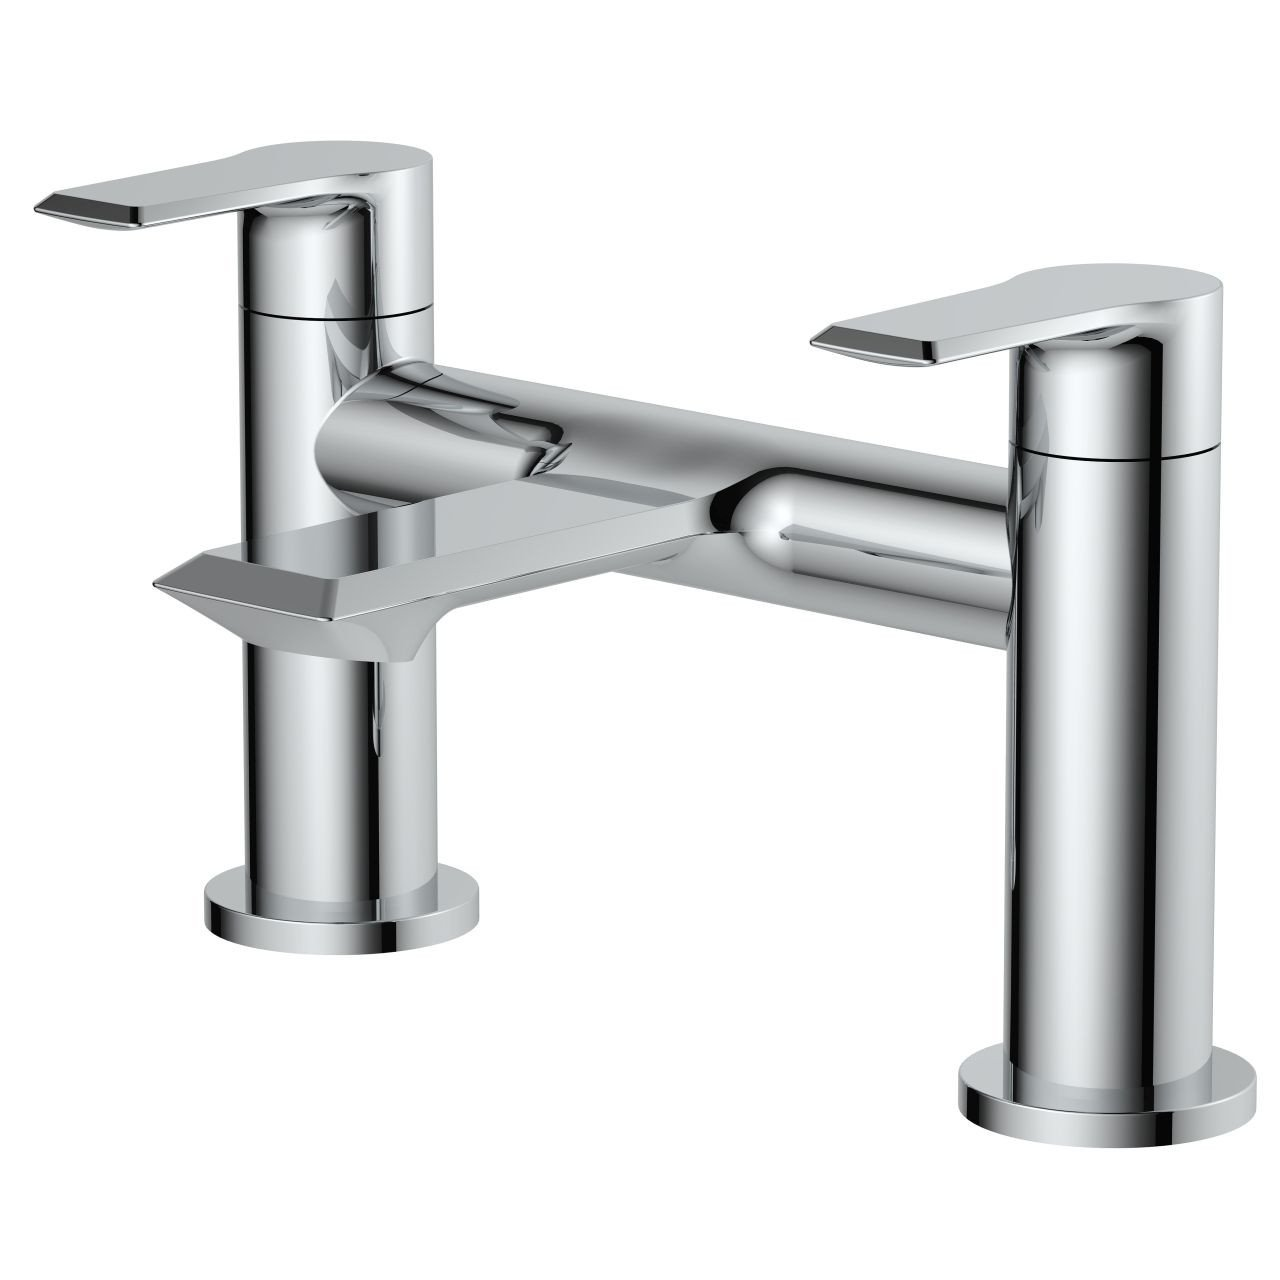 Nuie Limit Round Deck Mounted Bath Filler Tap - LIM303